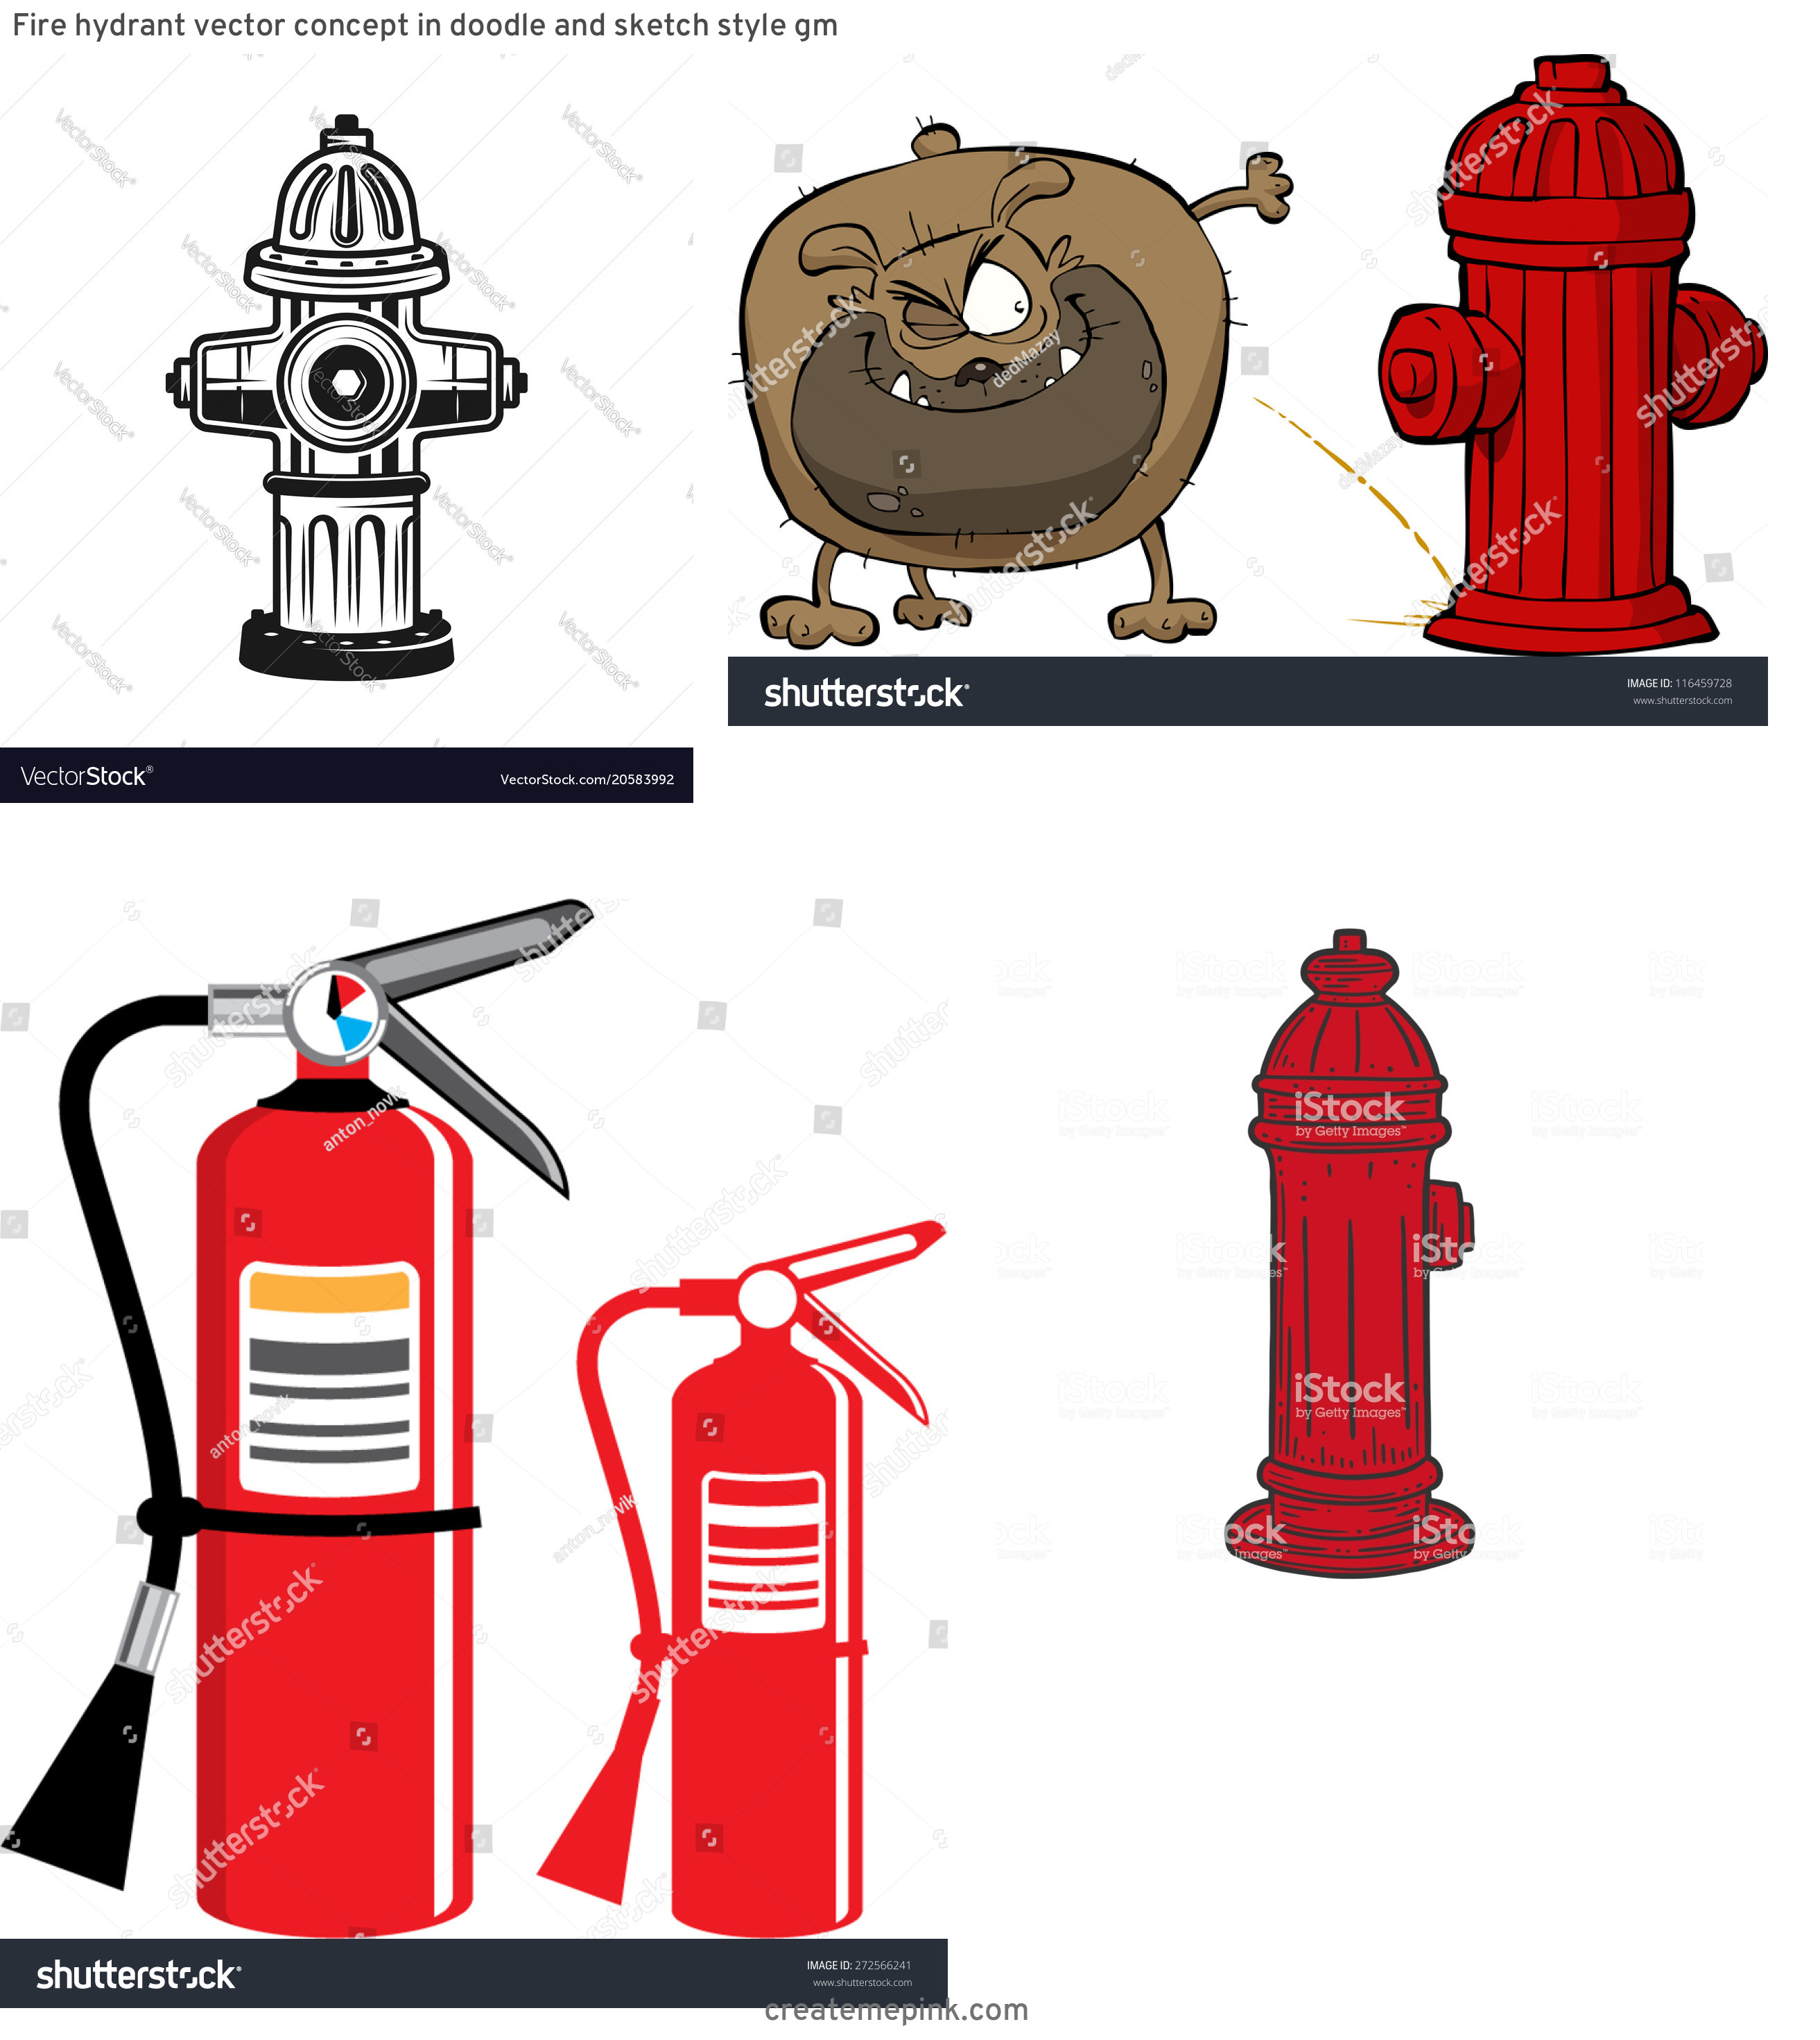 Fire Hydrant Vector Clip Art: Fire Hydrant Vector Concept In Doodle And Sketch Style Gm